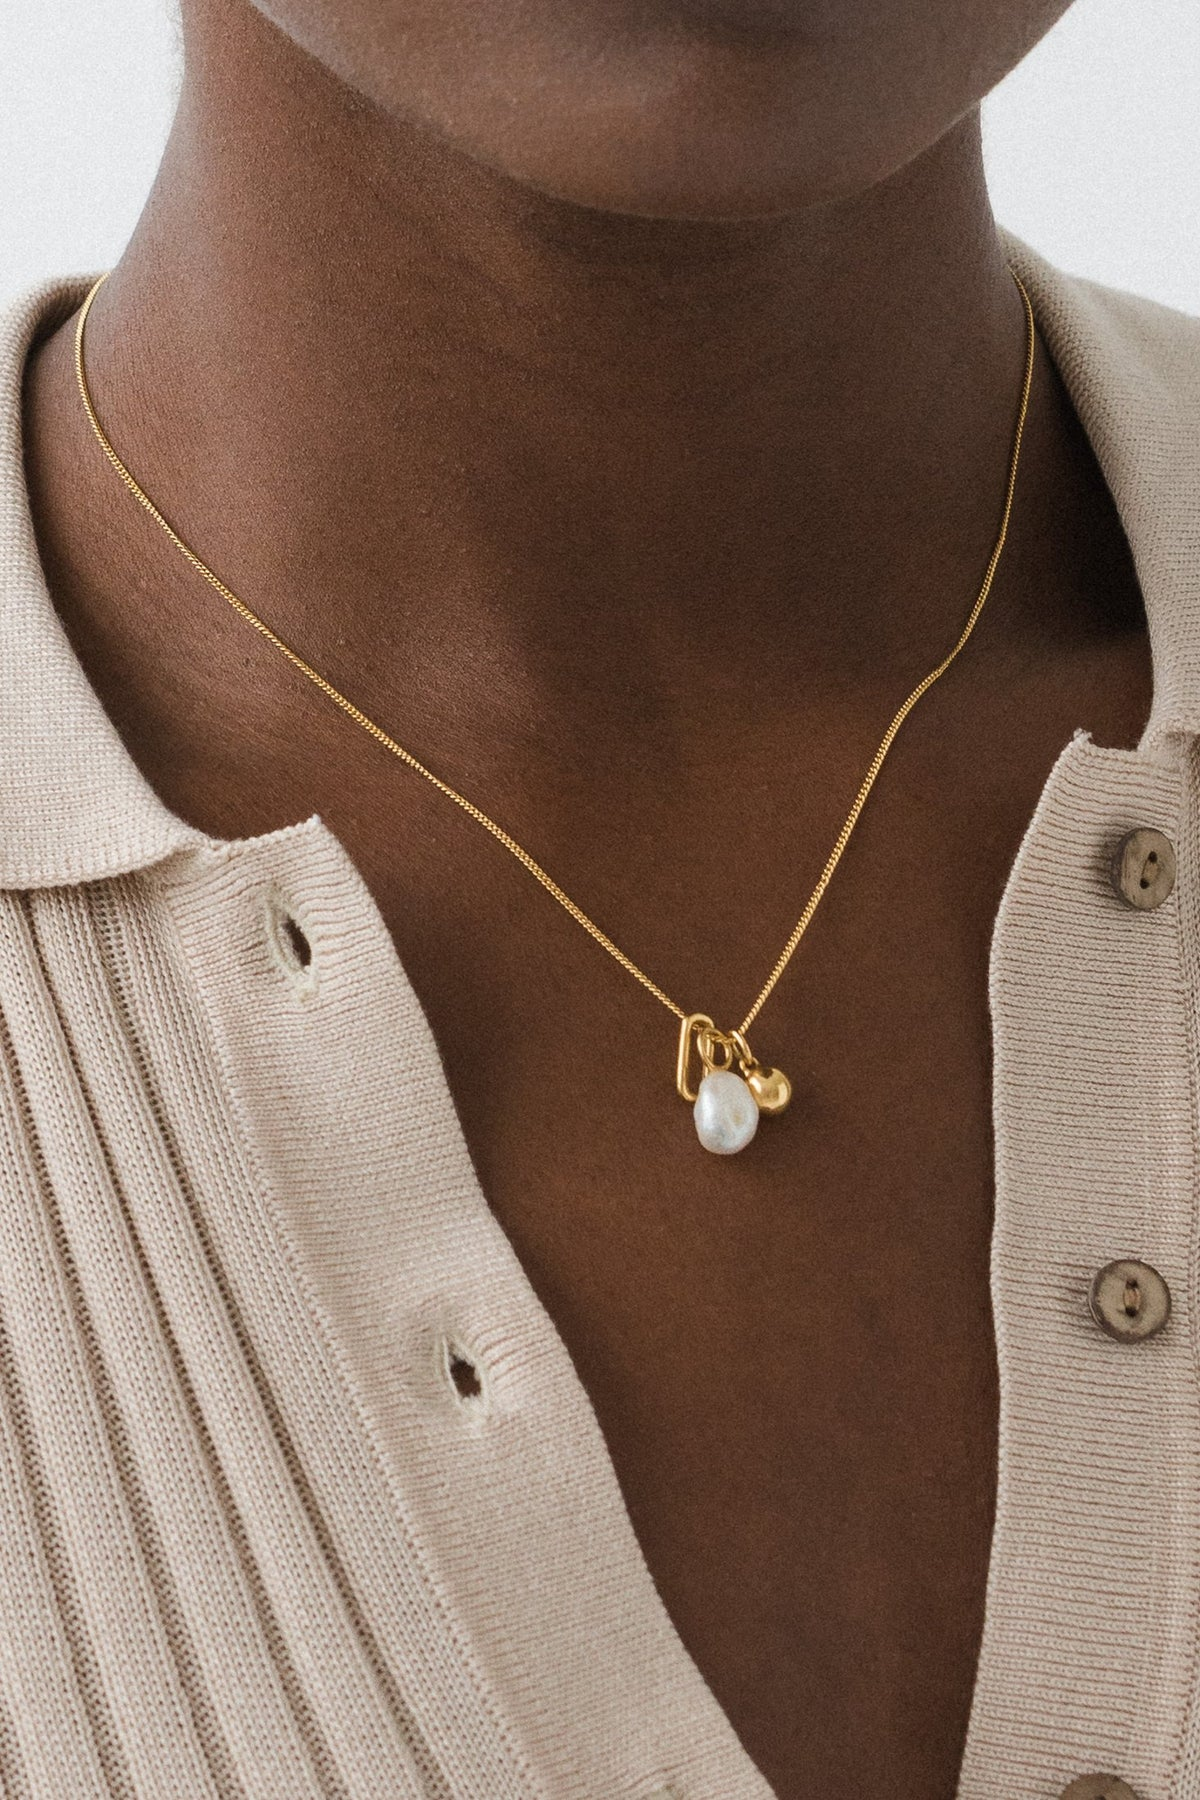 Vacation charmk gold necklace by flash jewellery on Makers' Mrkt makers market Melbourne